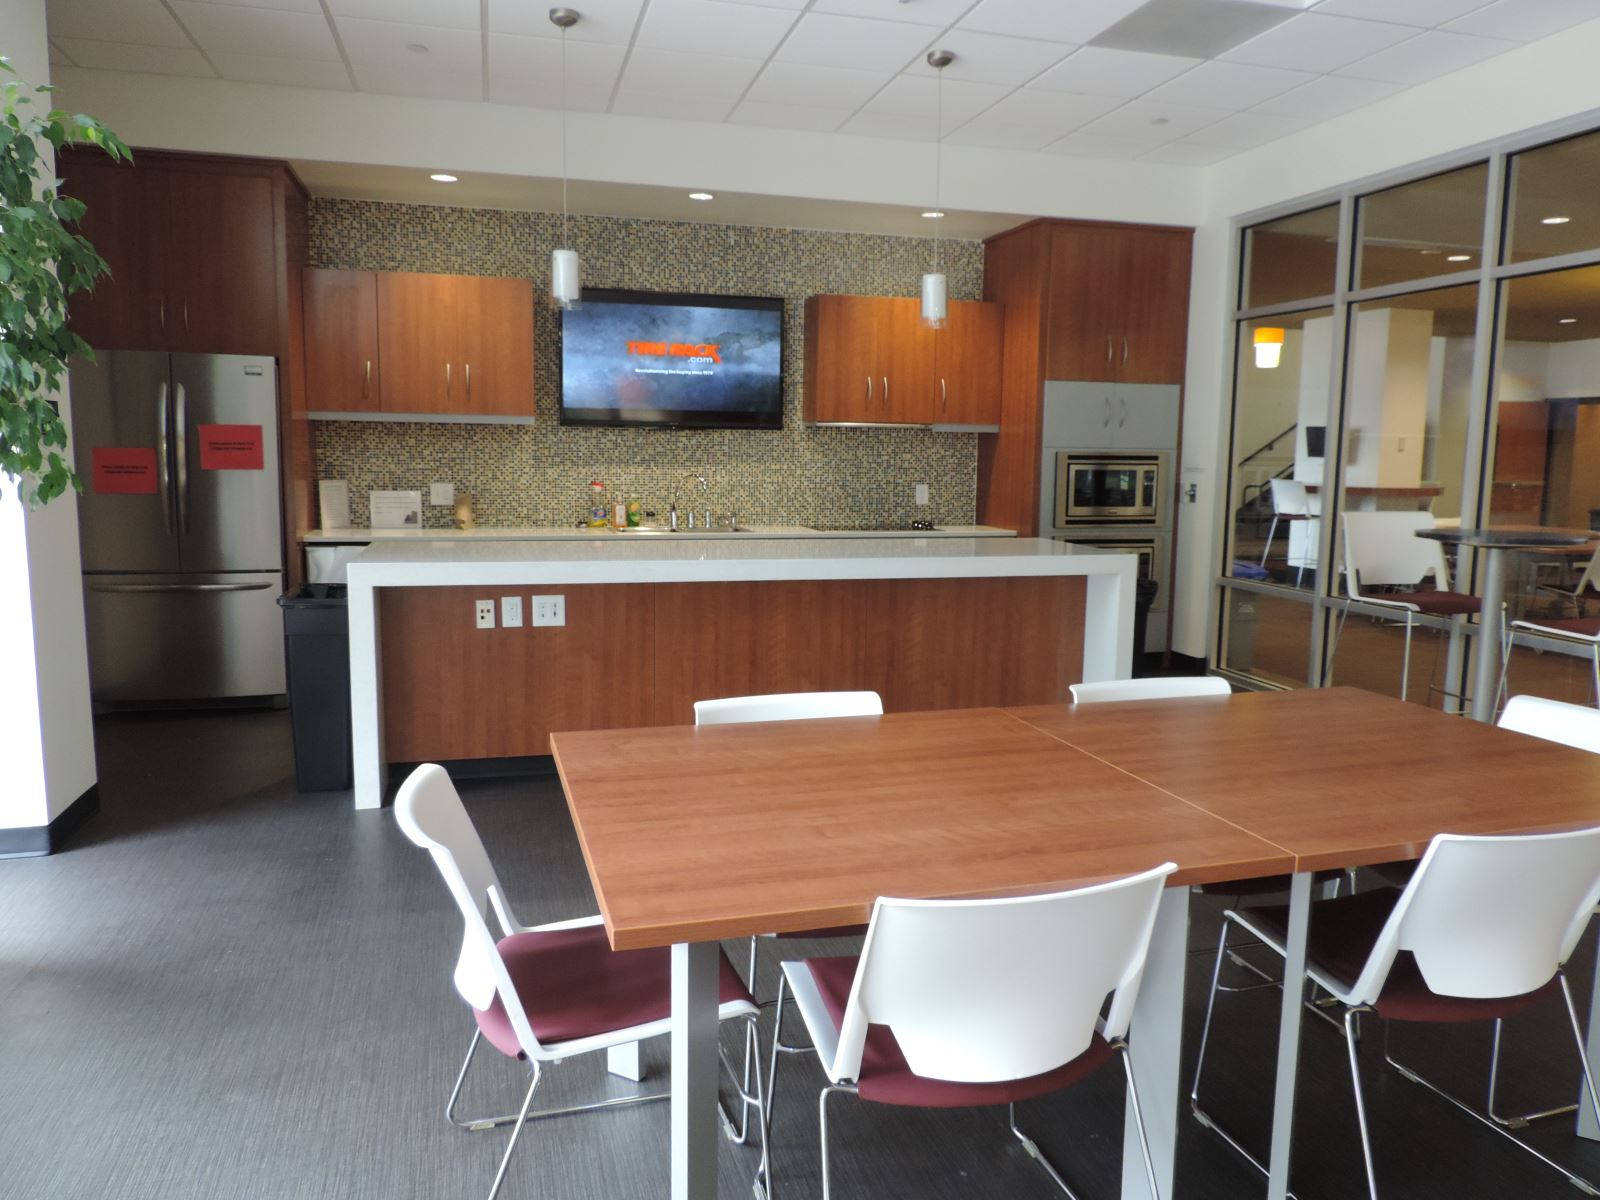 Moseley Center Kitchen